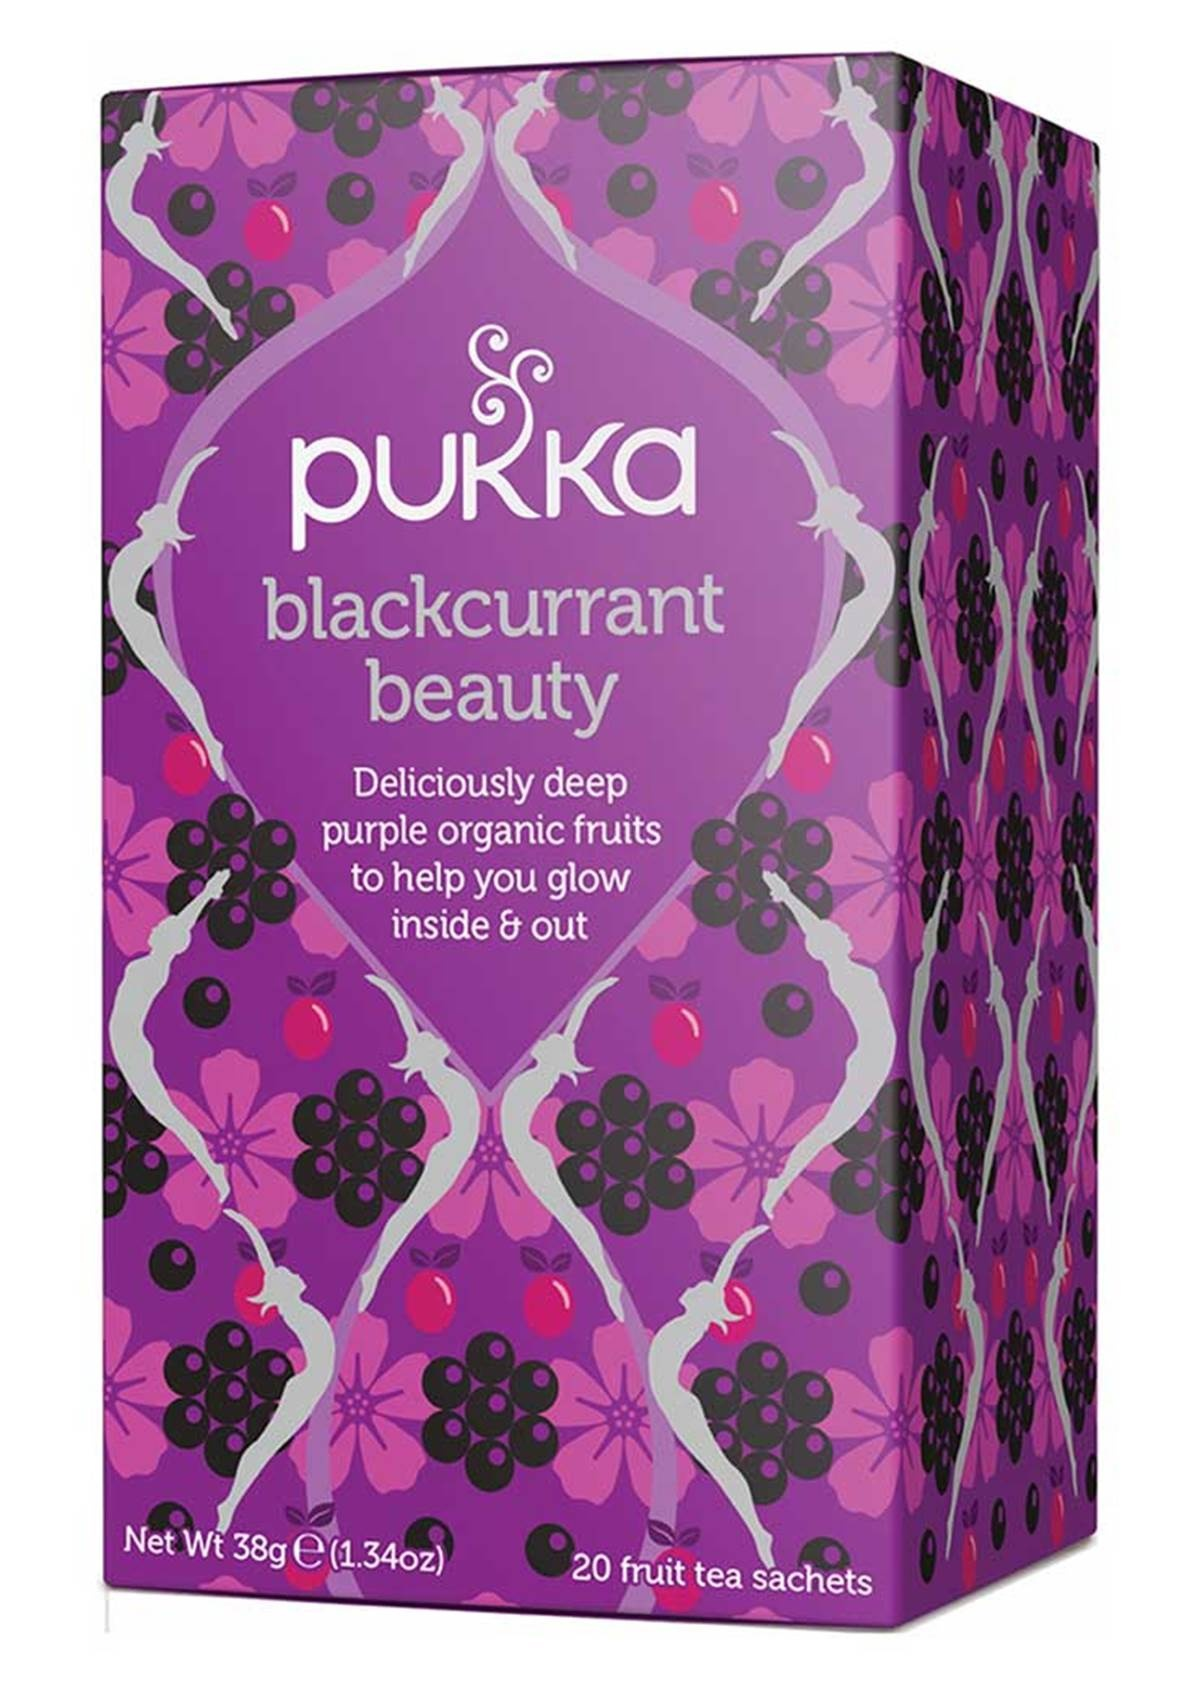 Pukka Blackcurrant Beauty Tea x 20 bags